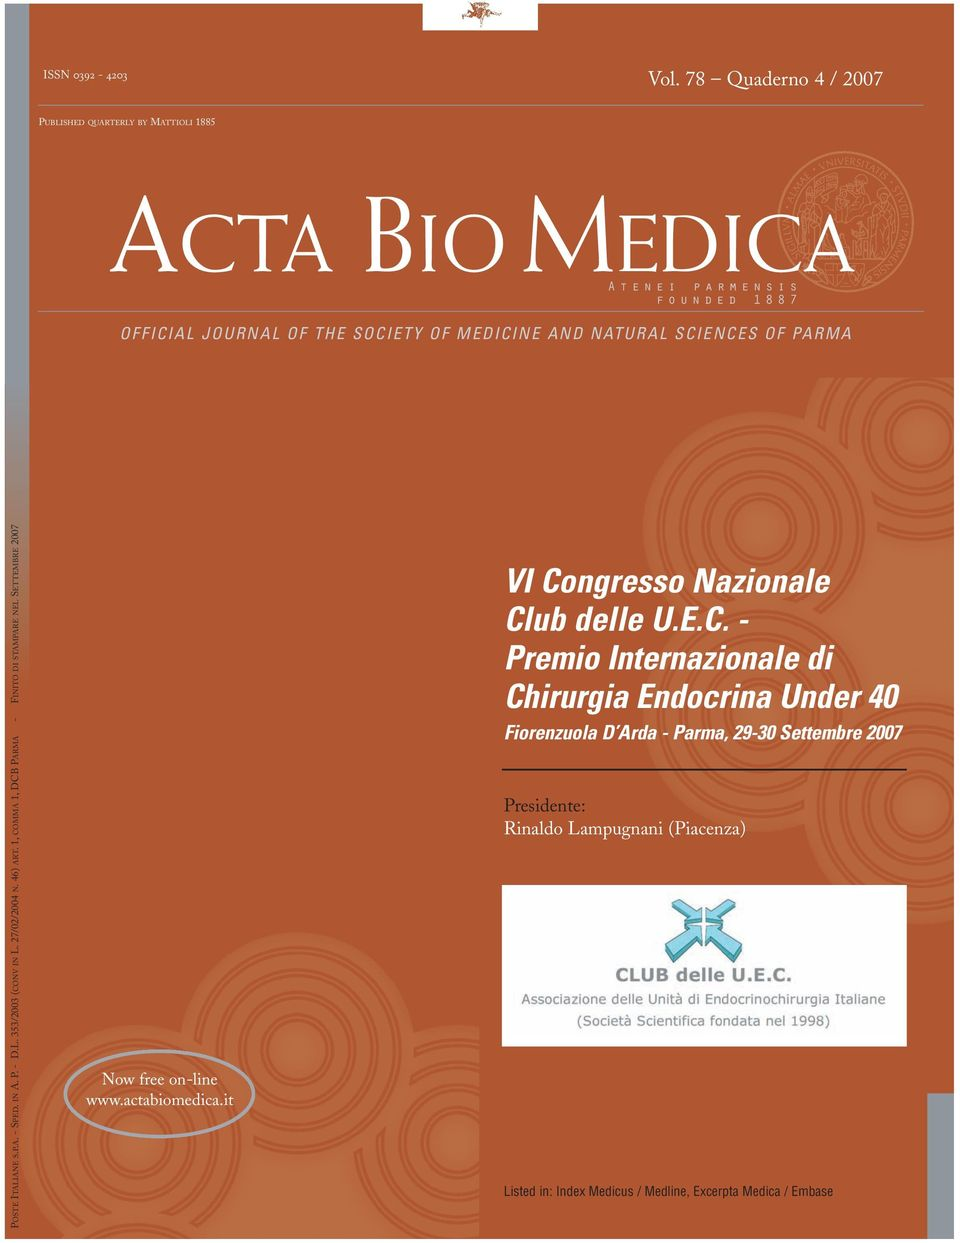 MEDICINE AND NATURAL SCIENCES OF PARMA POSTE ITALIANE S.P.A. - SPED. IN A. P. - D.L. 353/2003 (CONV IN L. 27/02/2004 N. 46) ART.